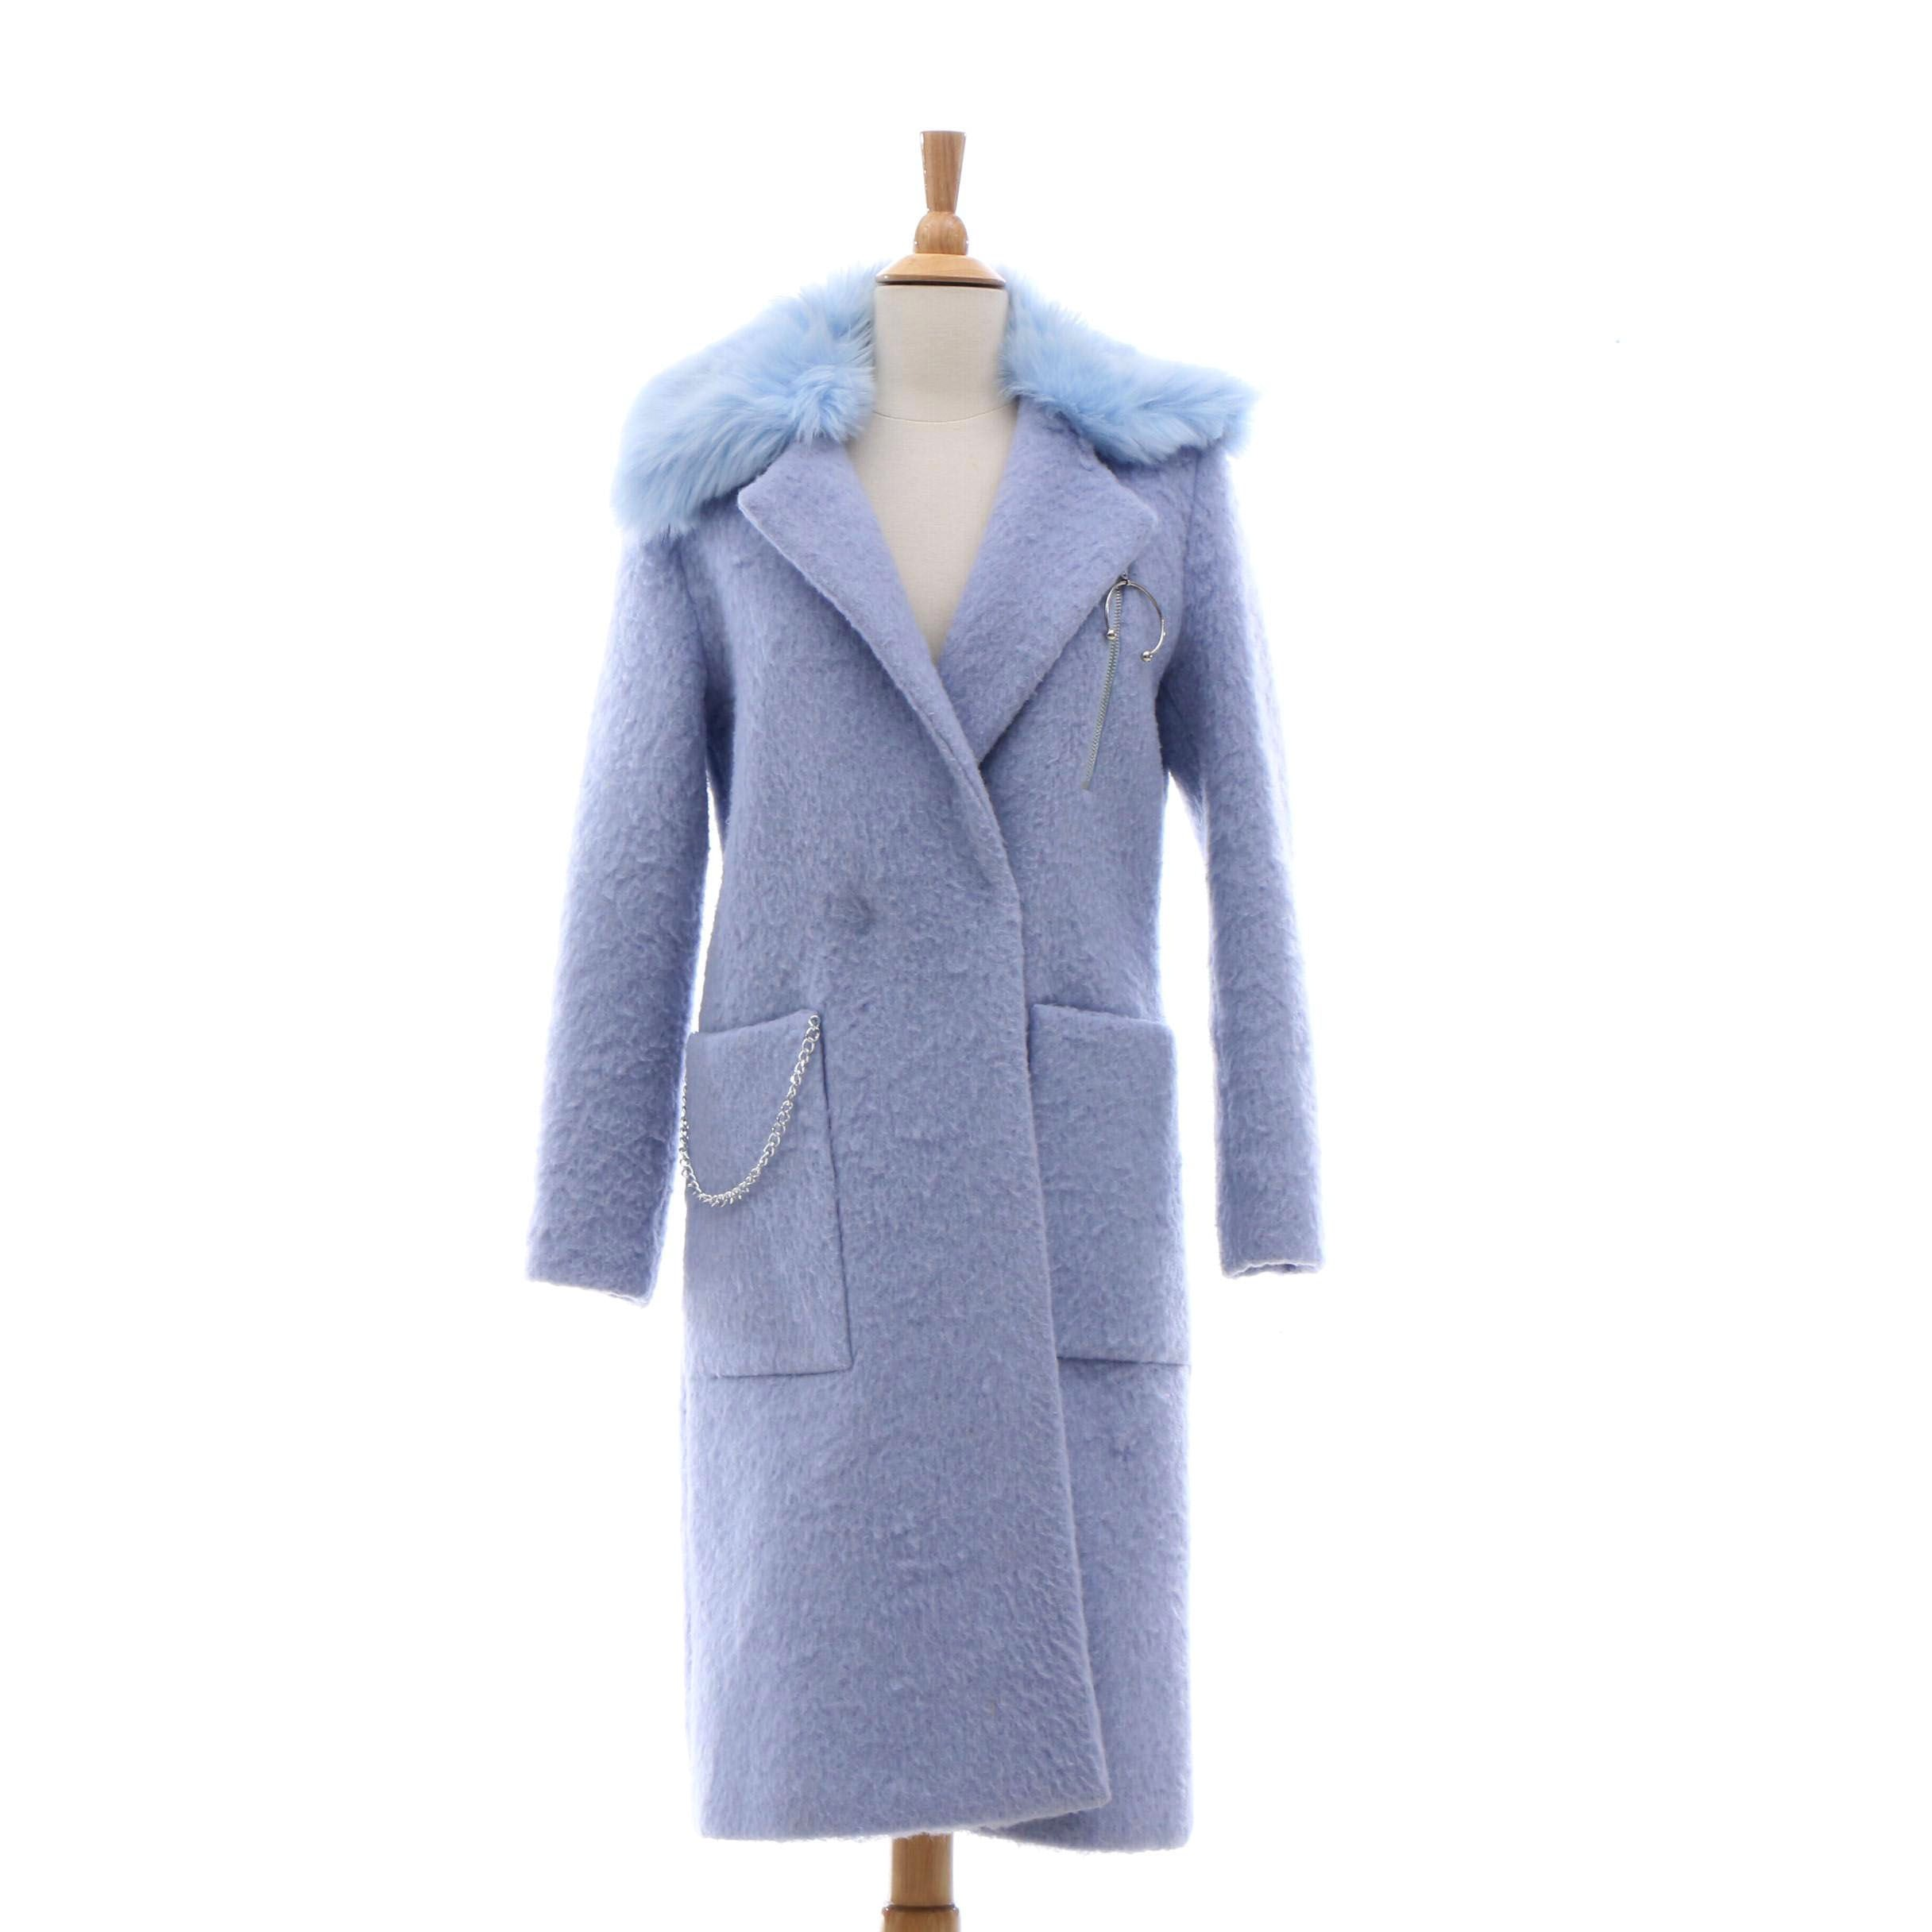 Kim Shui for Urban Outfitters Powder Blue Coat with Faux Fur Collar